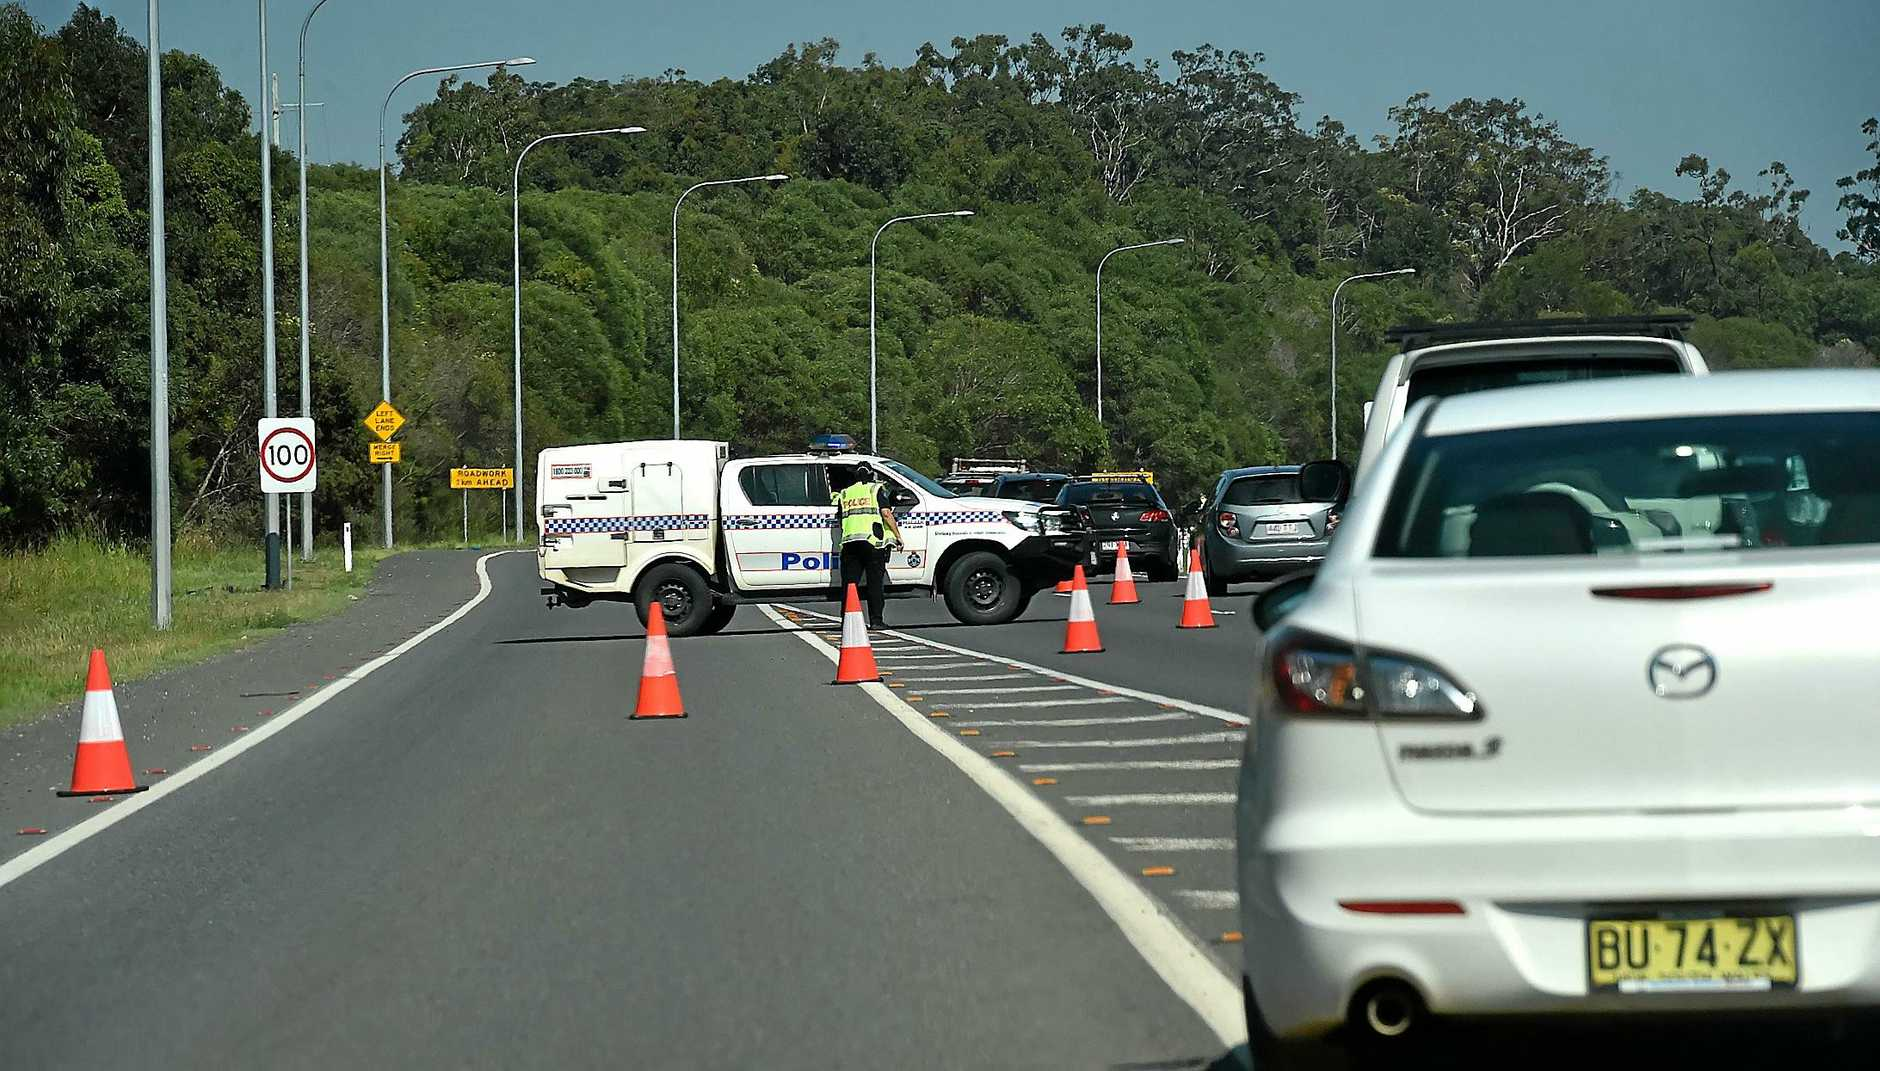 The forensic crash unit is investigating the cause of the crash.